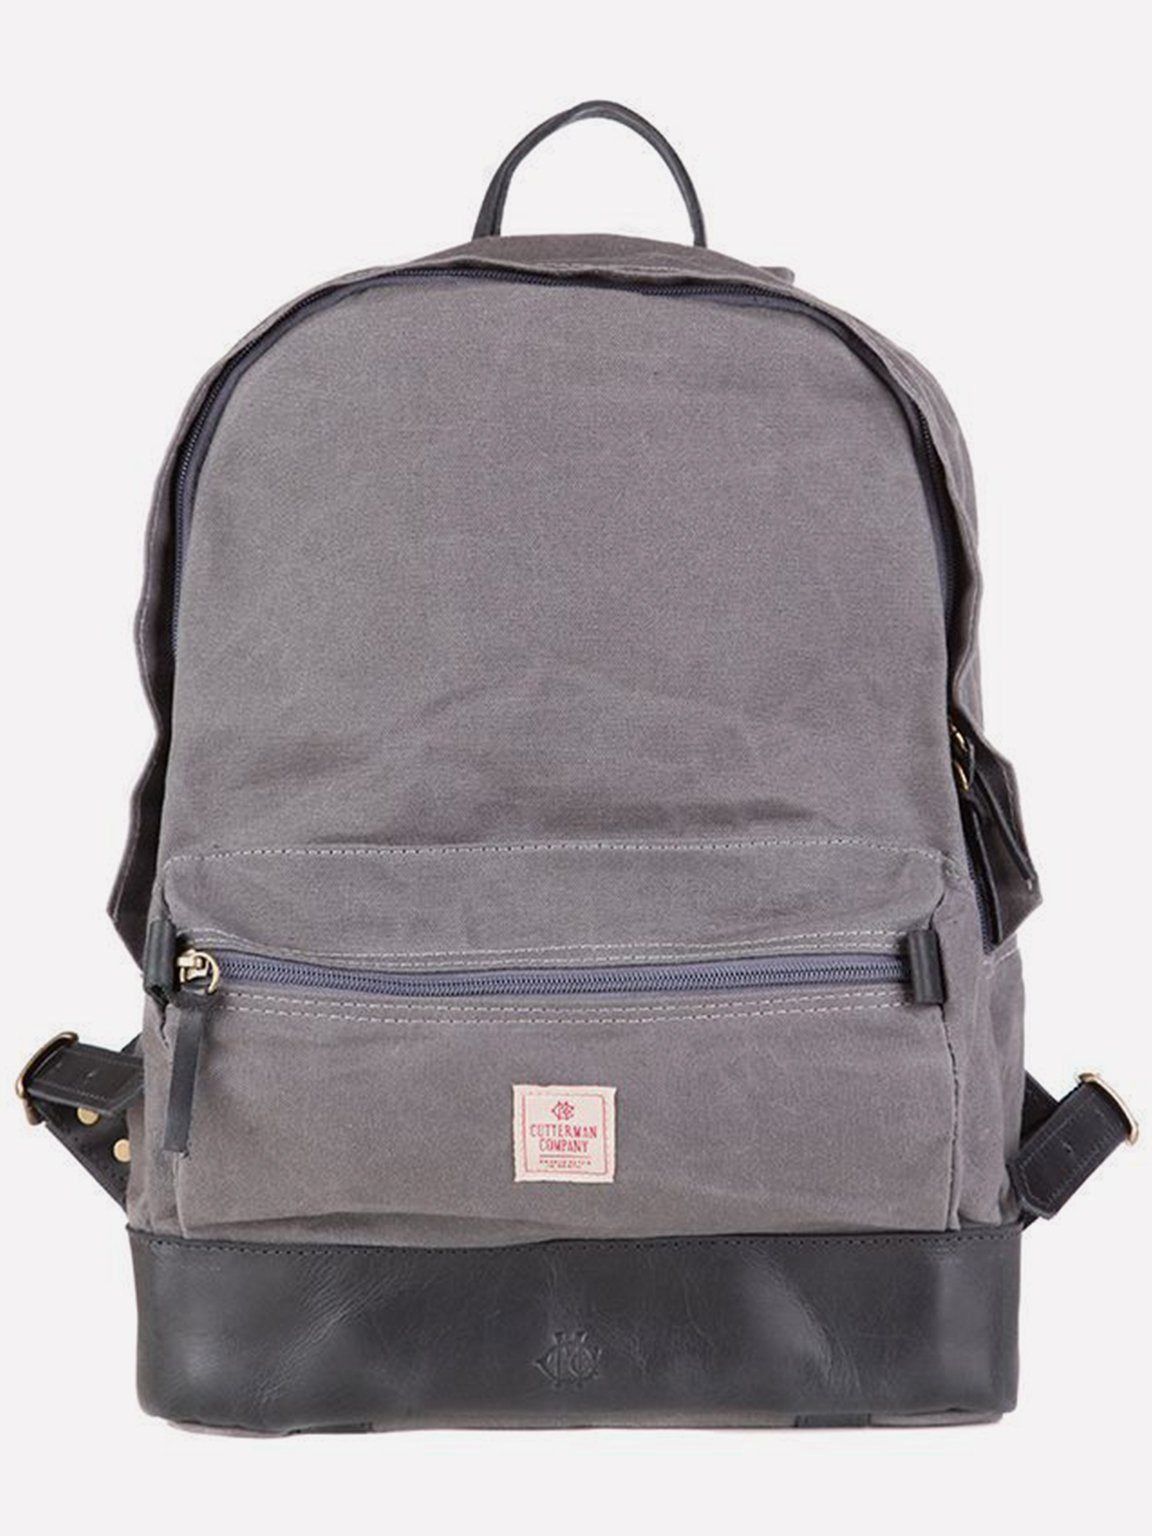 Foto do Mochila Cutterman Co CALIFORNIA nº 02 - Grey